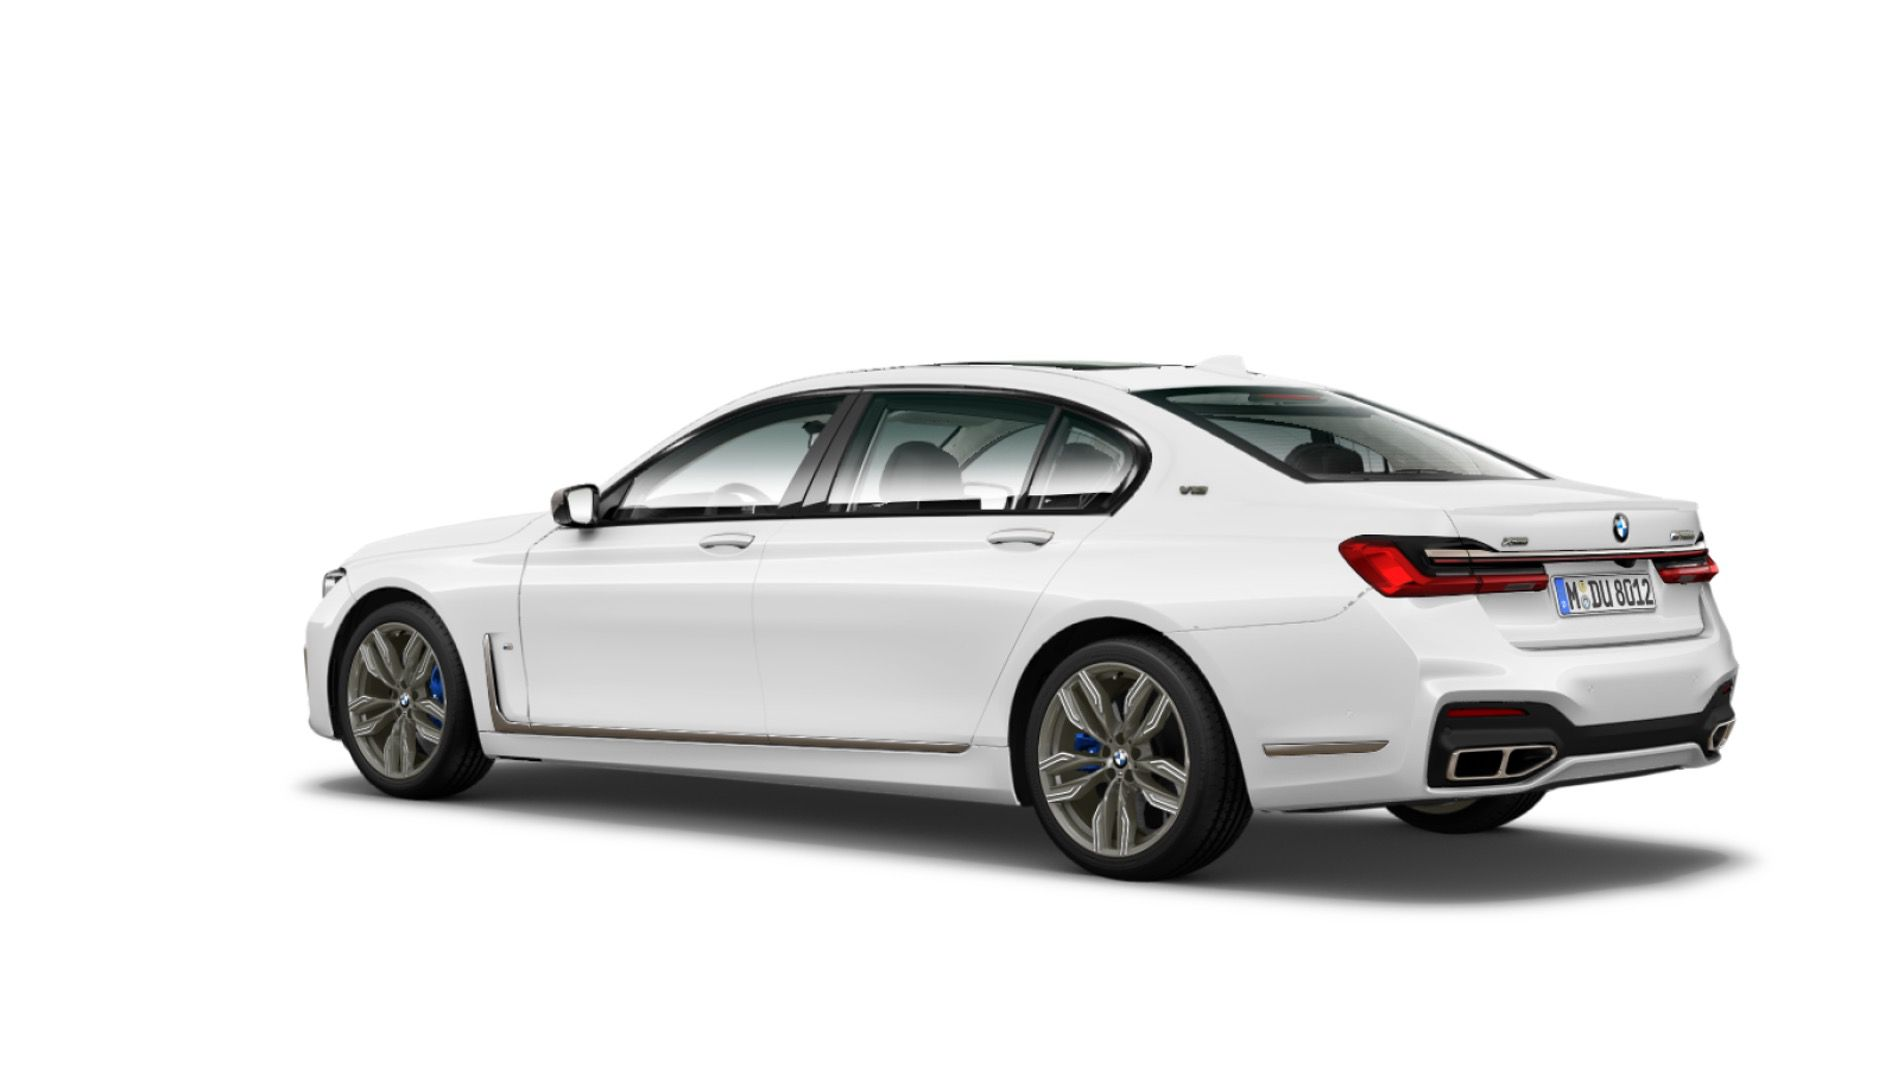 Bmw Has More Leaks Than A Cheap Tent As The 2020 7 Series Configurator Accidentally Goes Live Early Top Speed